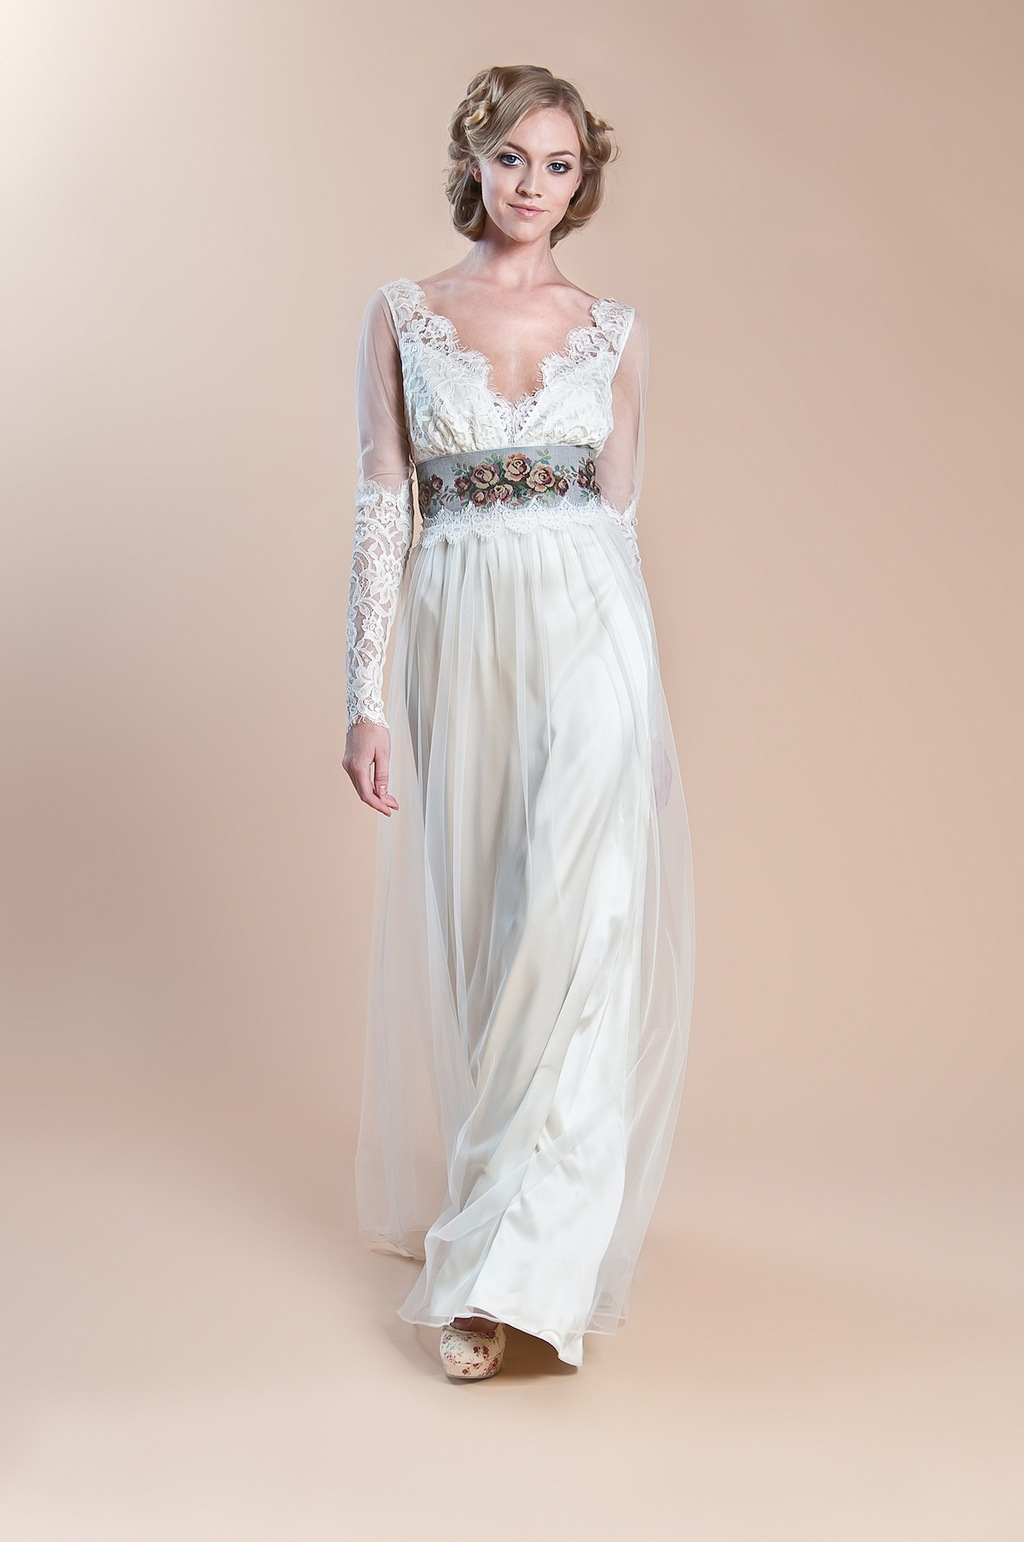 2013-wedding-dress-claire-pettibone-windsor-rose-collection-abbey.full